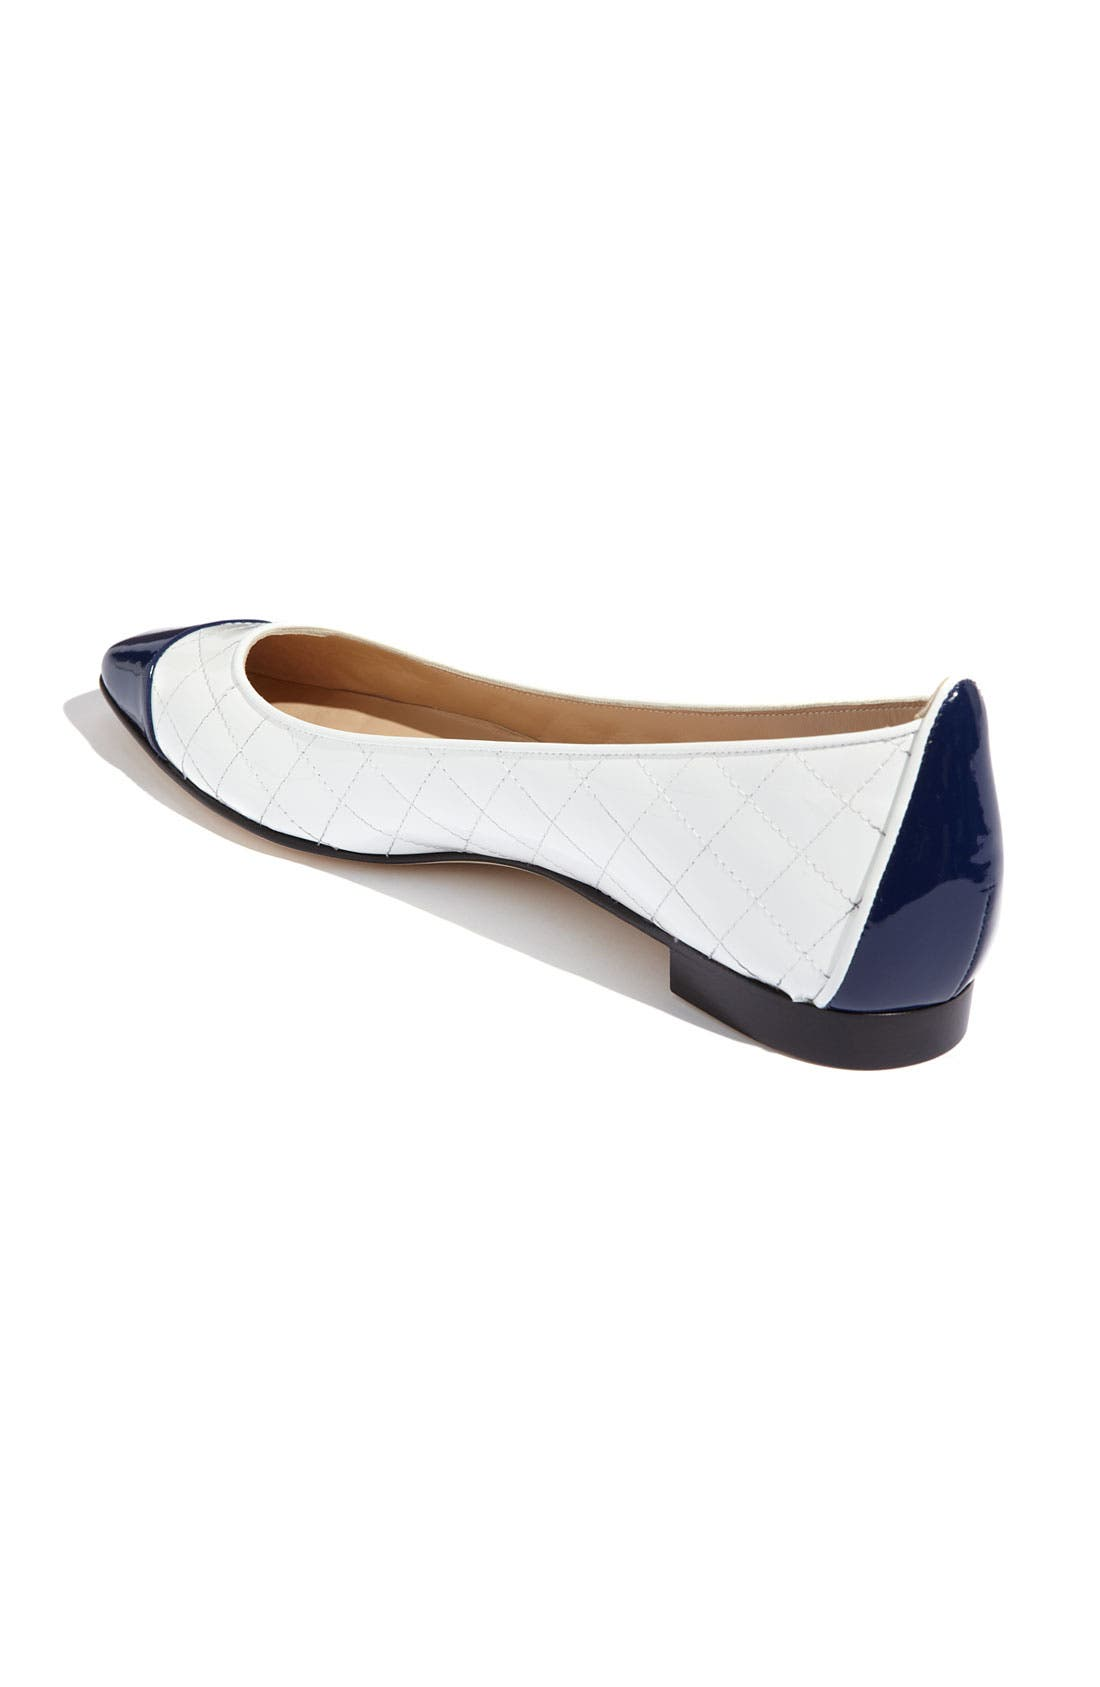 Alternate Image 2  - Manolo Blahnik Pointed Cap Toe Flat